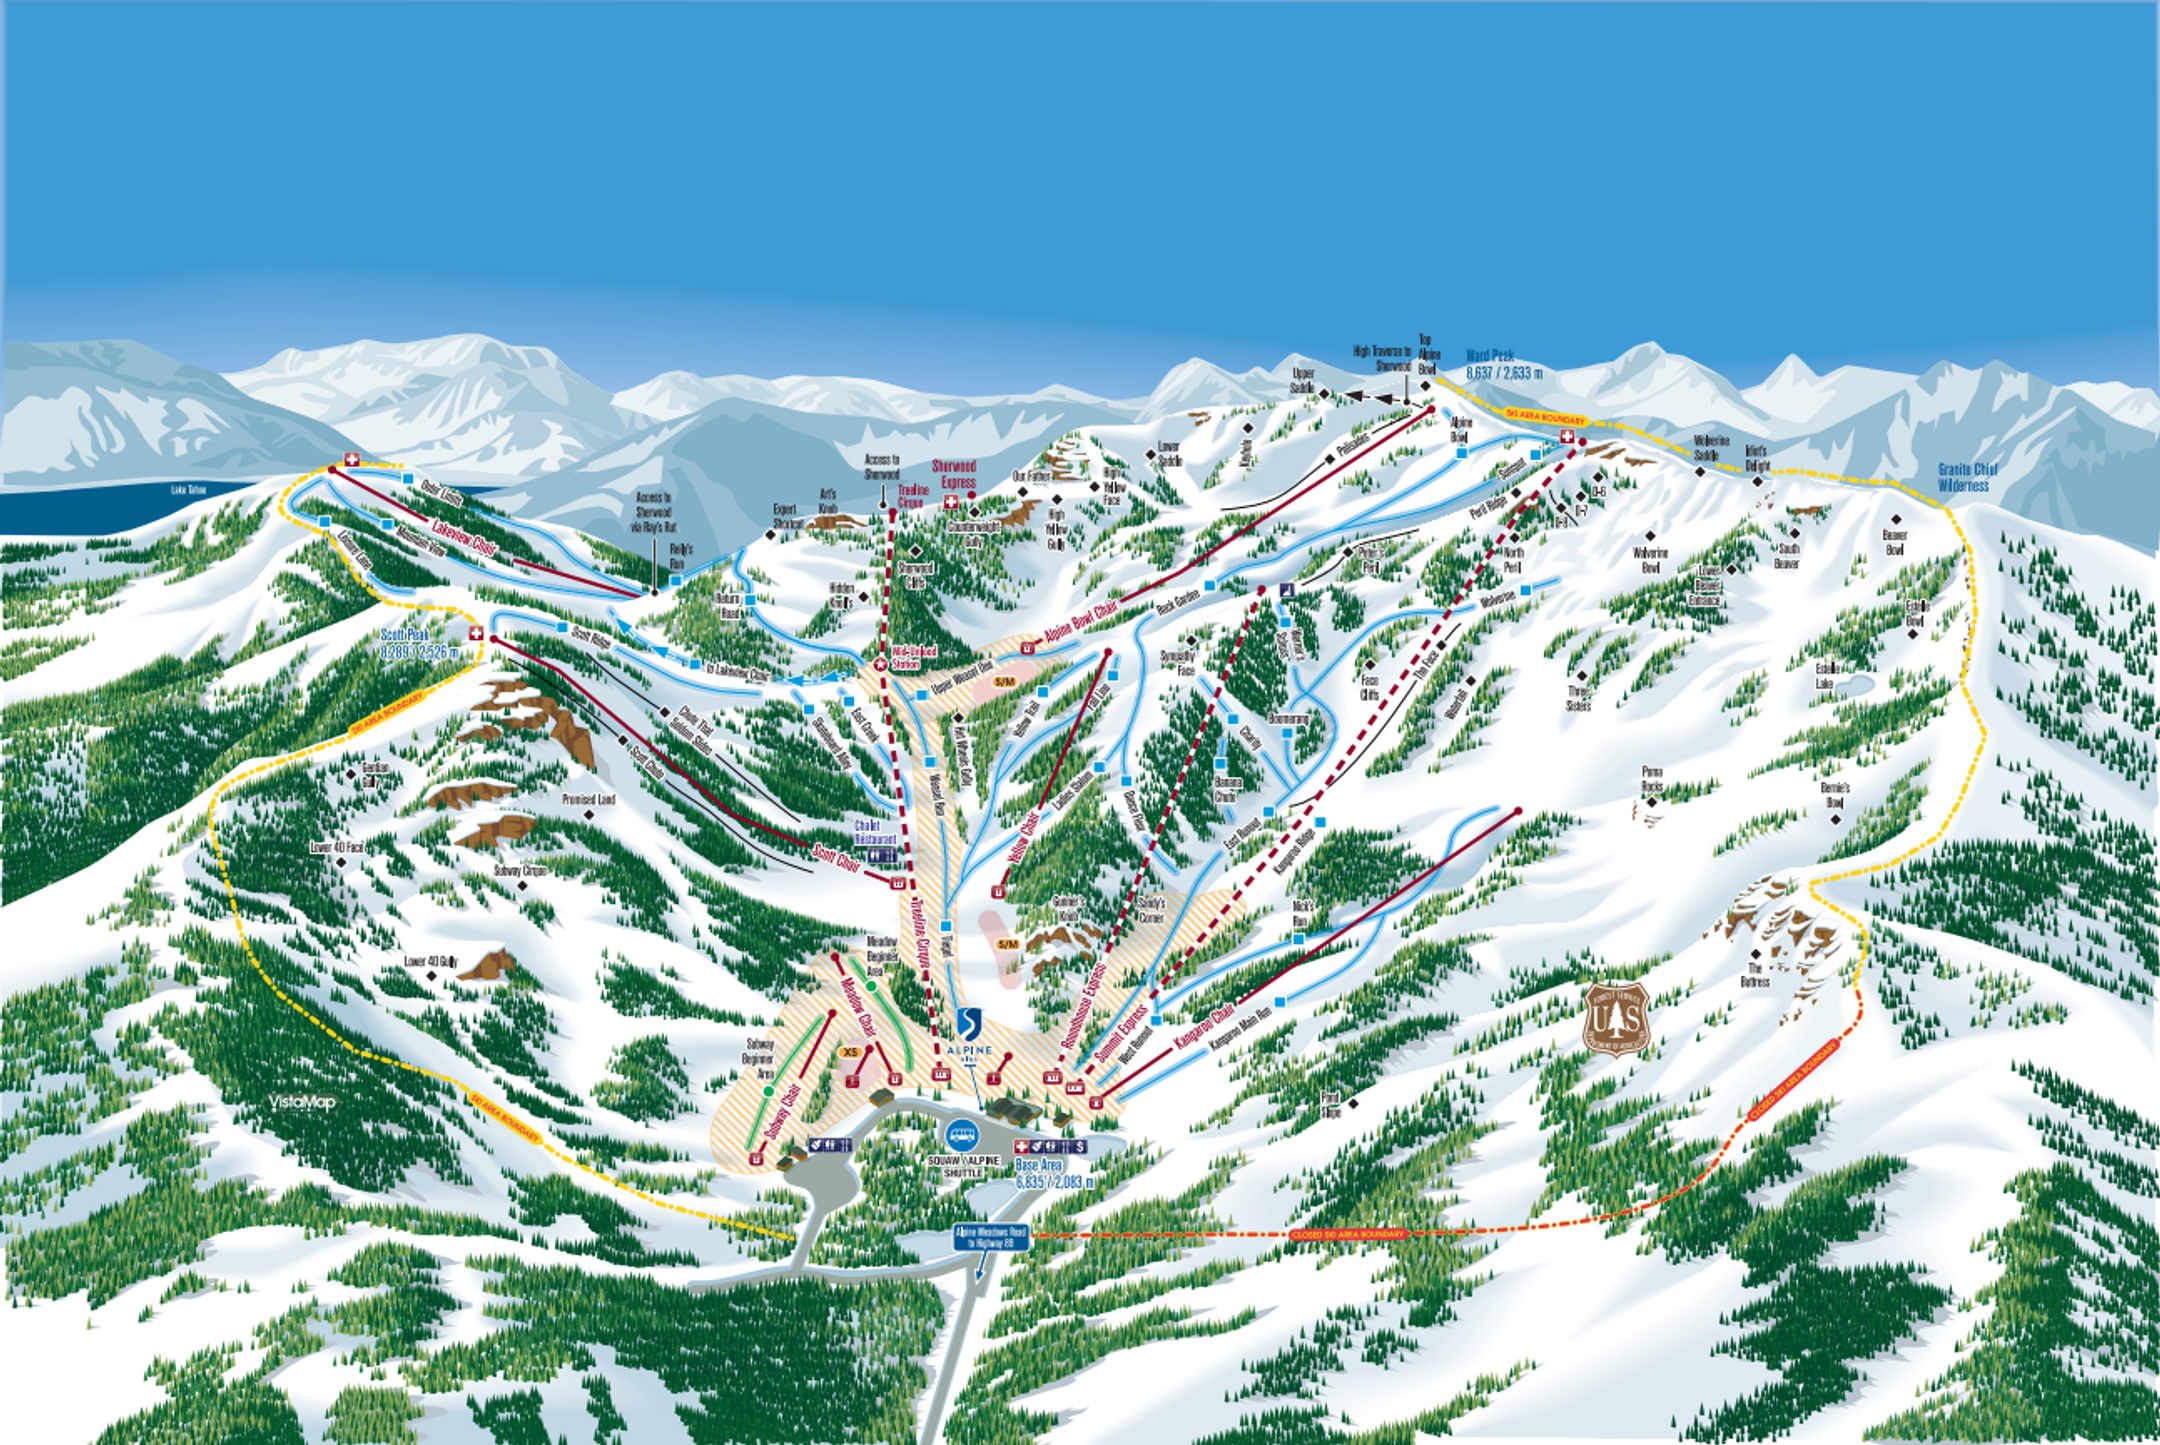 Alpine Meadows ski-resort-trail-map United States ripatrip